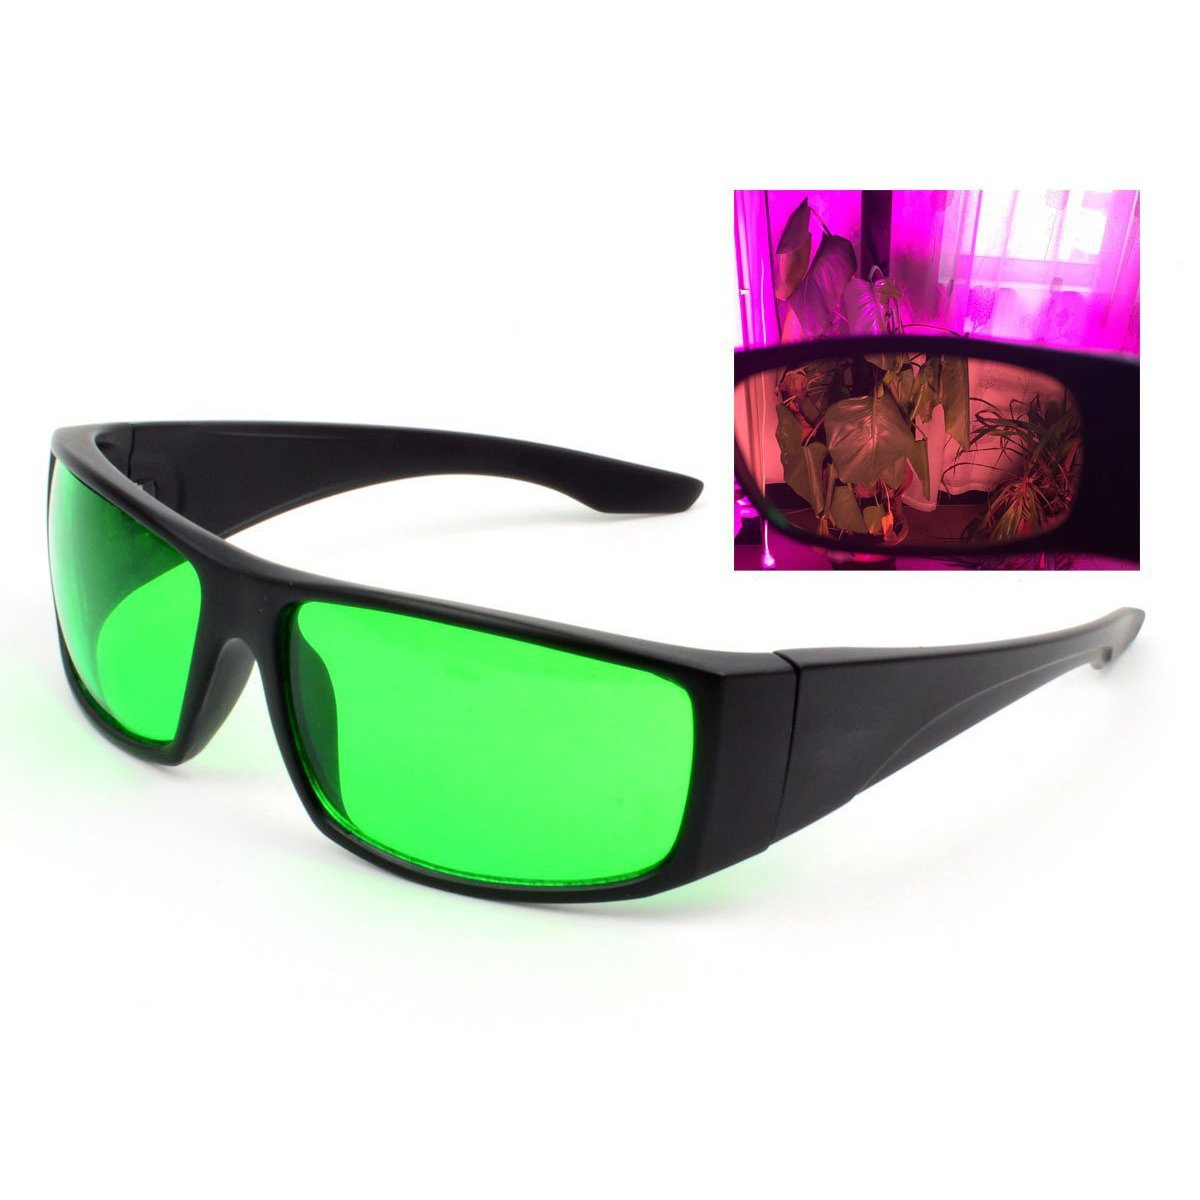 LED Grow Light Glasses Protective Safety Indoor Room Hydroponics for Intense LED lighting Visual Eye Protection dreamdream